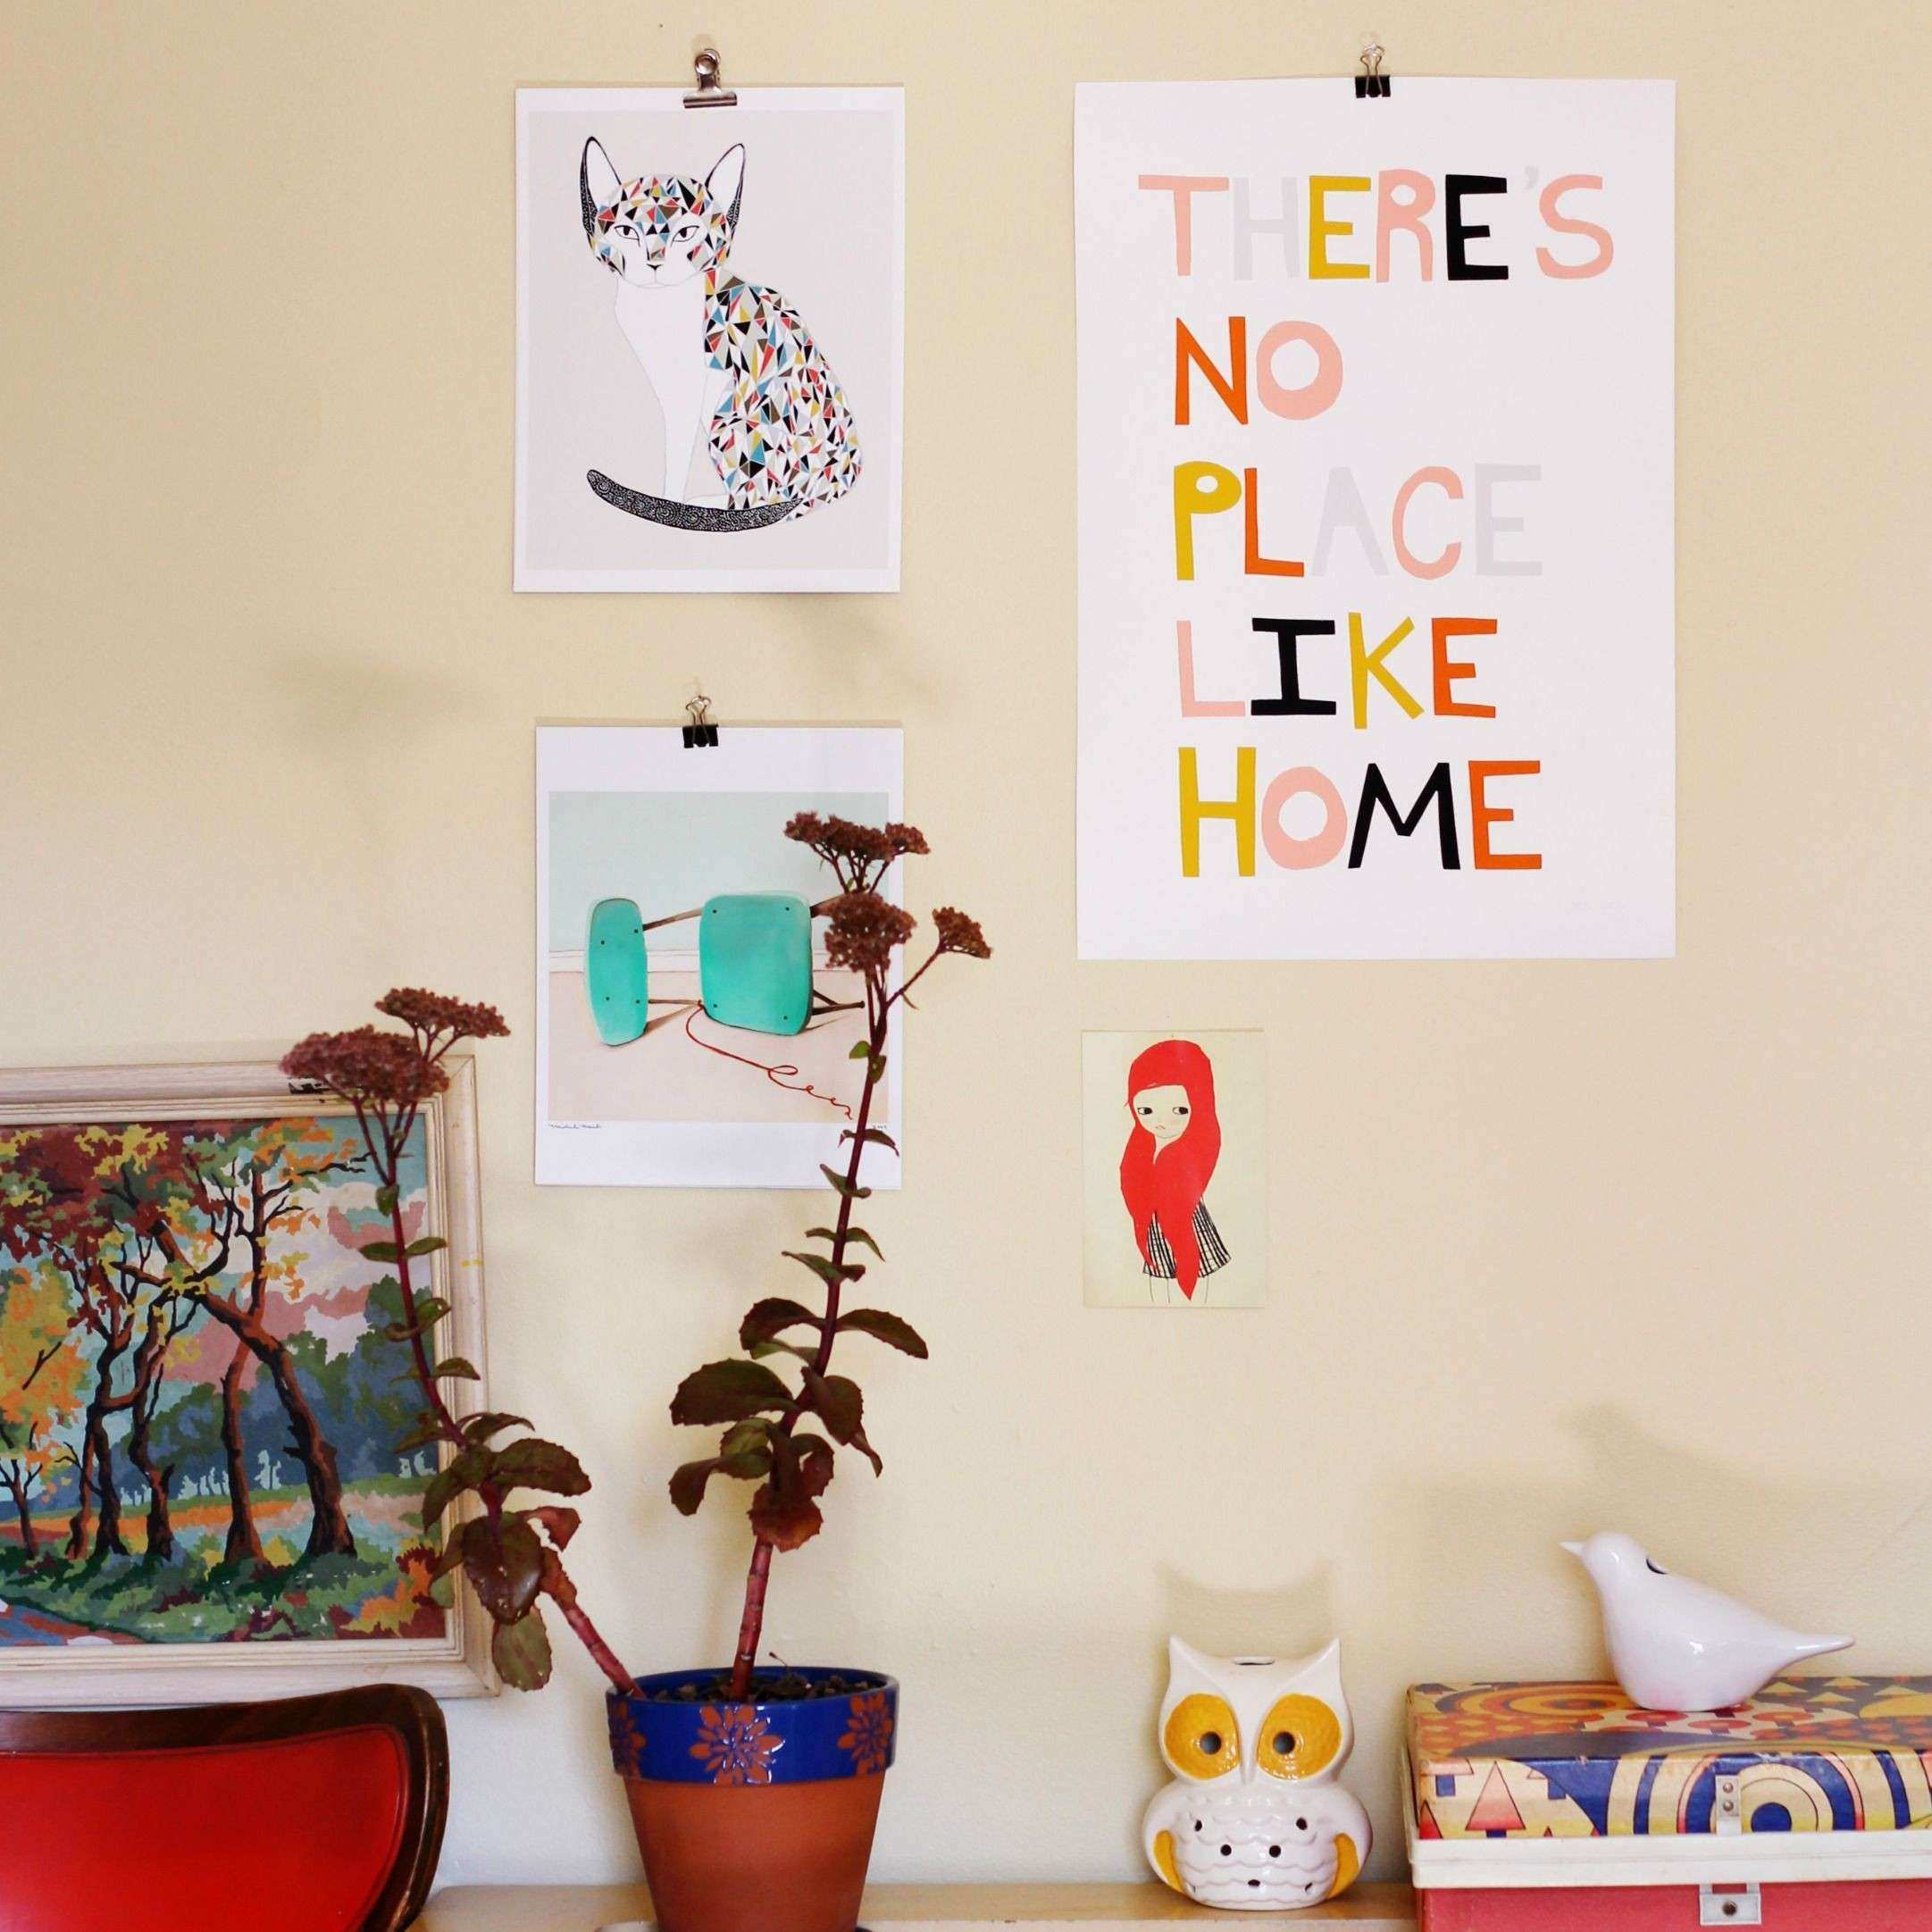 Hang your art prints with binder clips DIY Those sticky mand